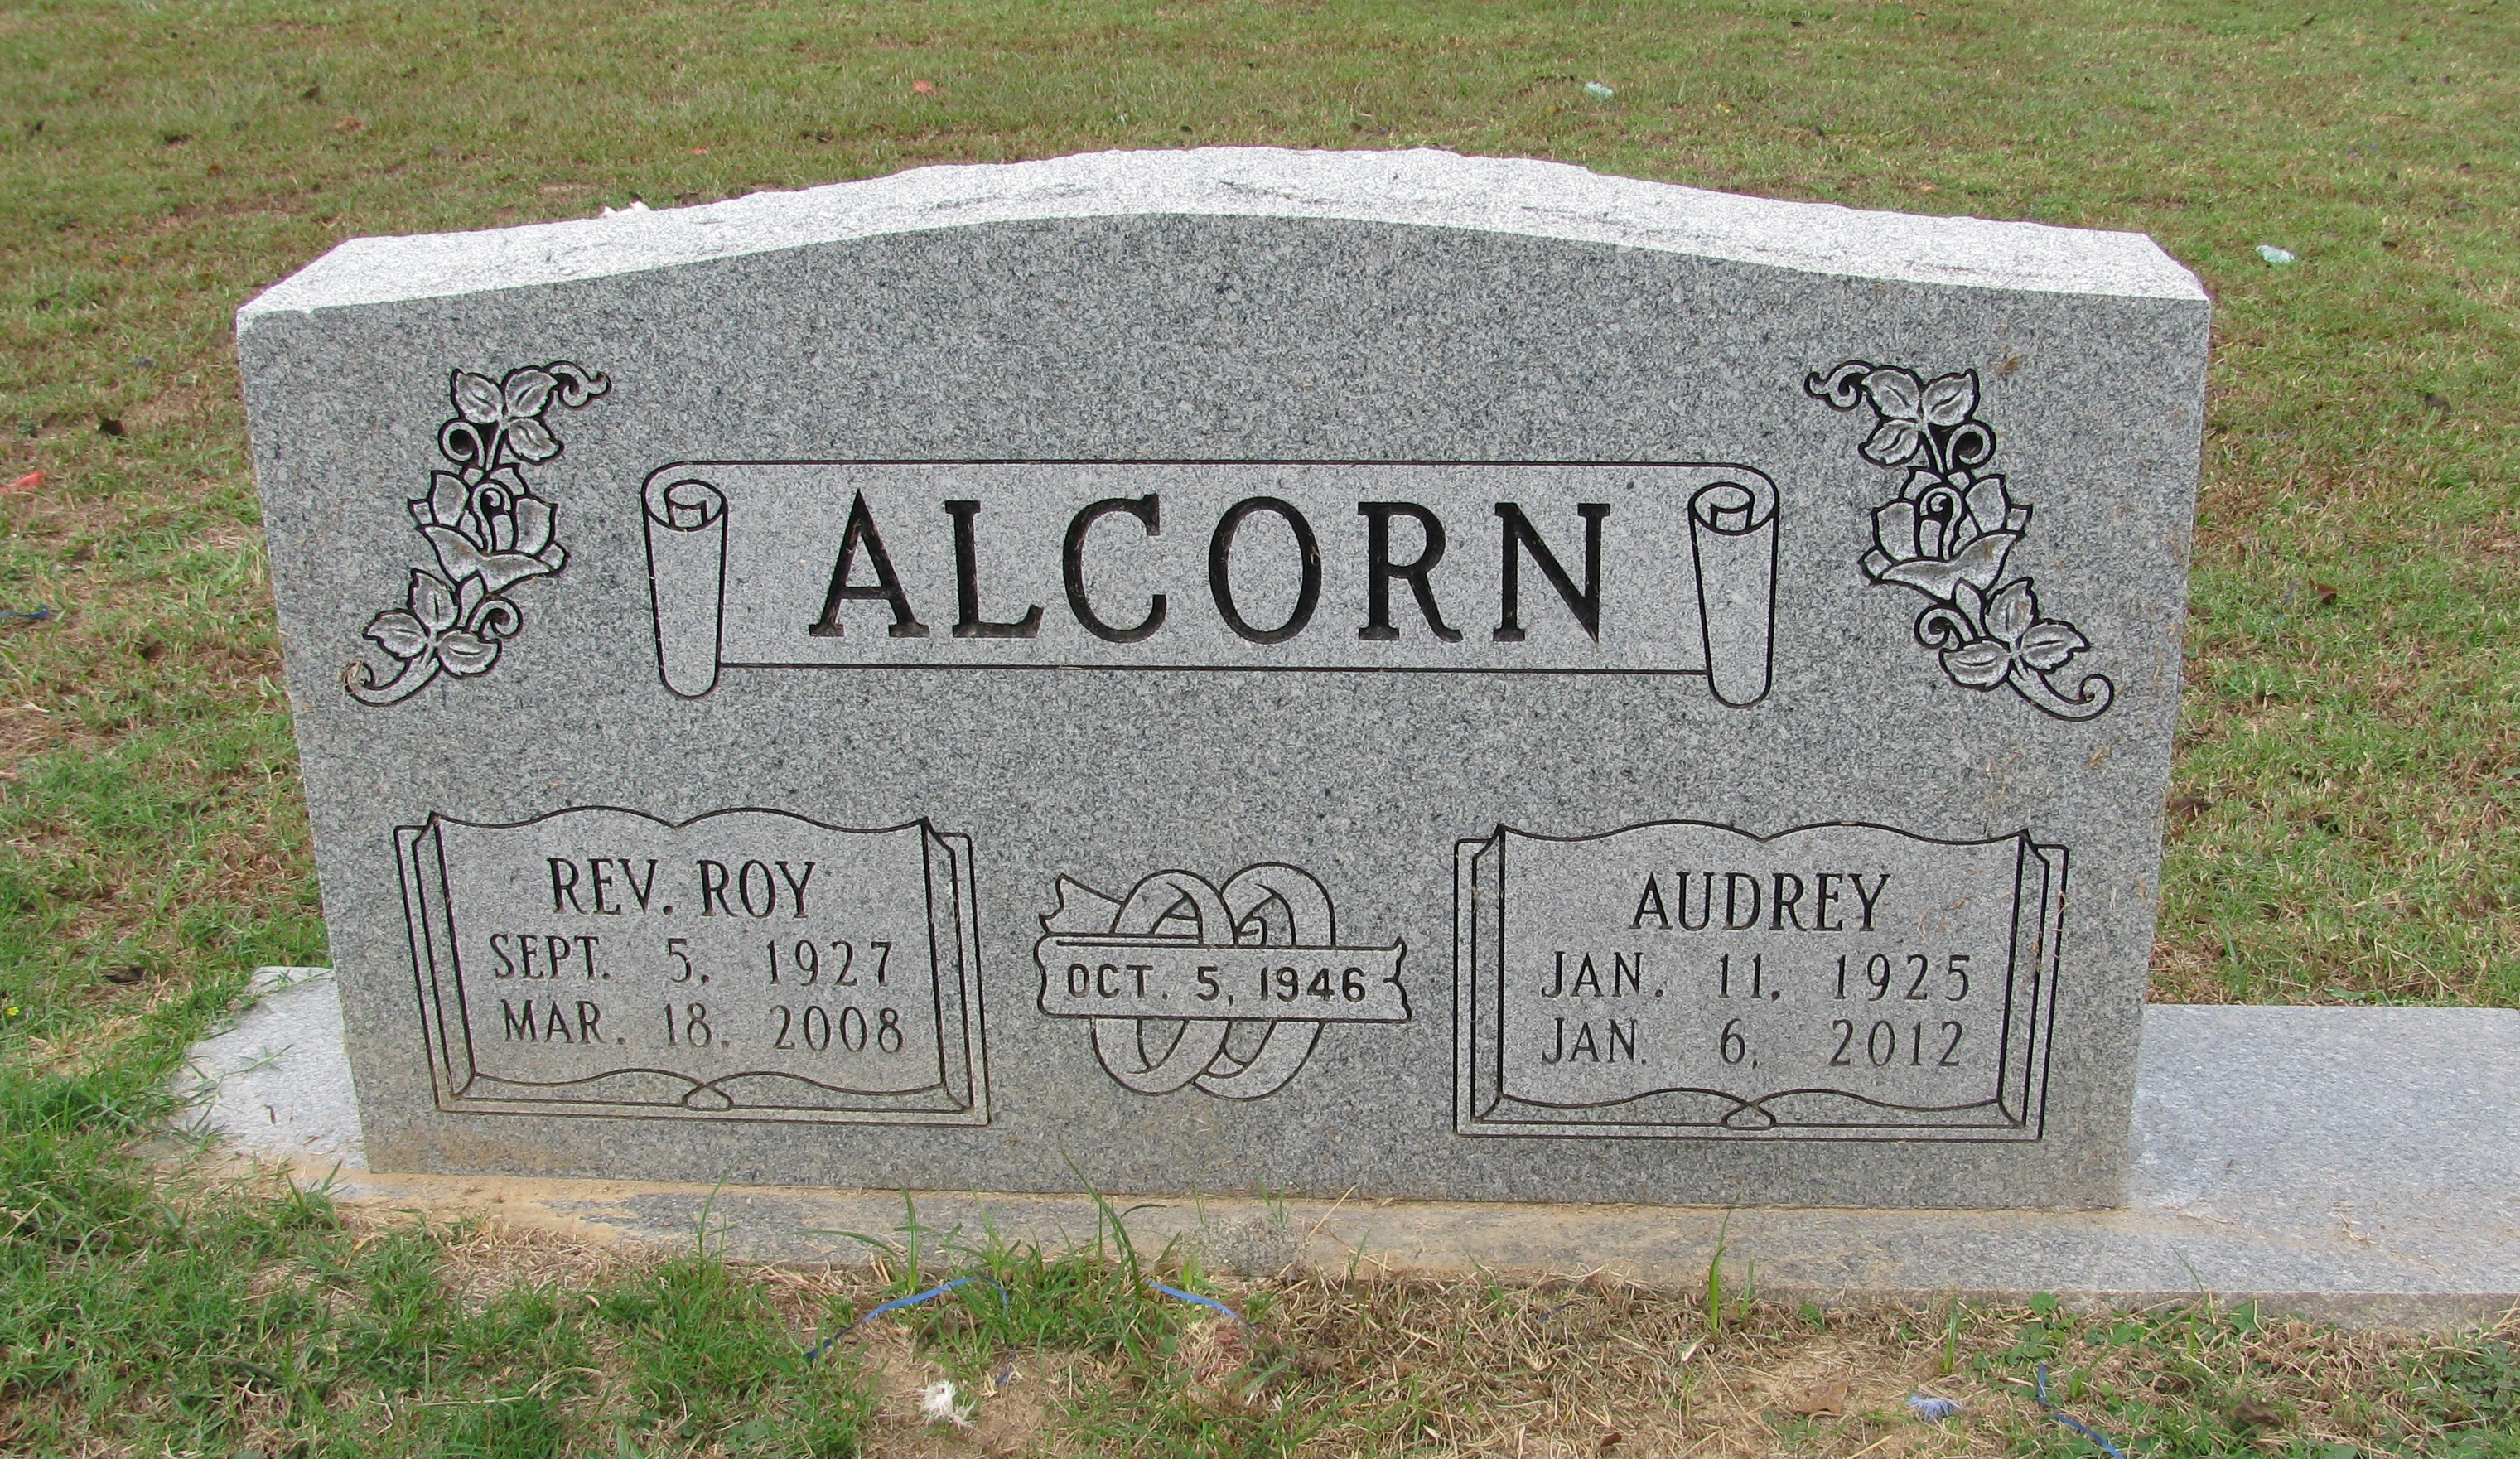 Rev Roy Alcorn